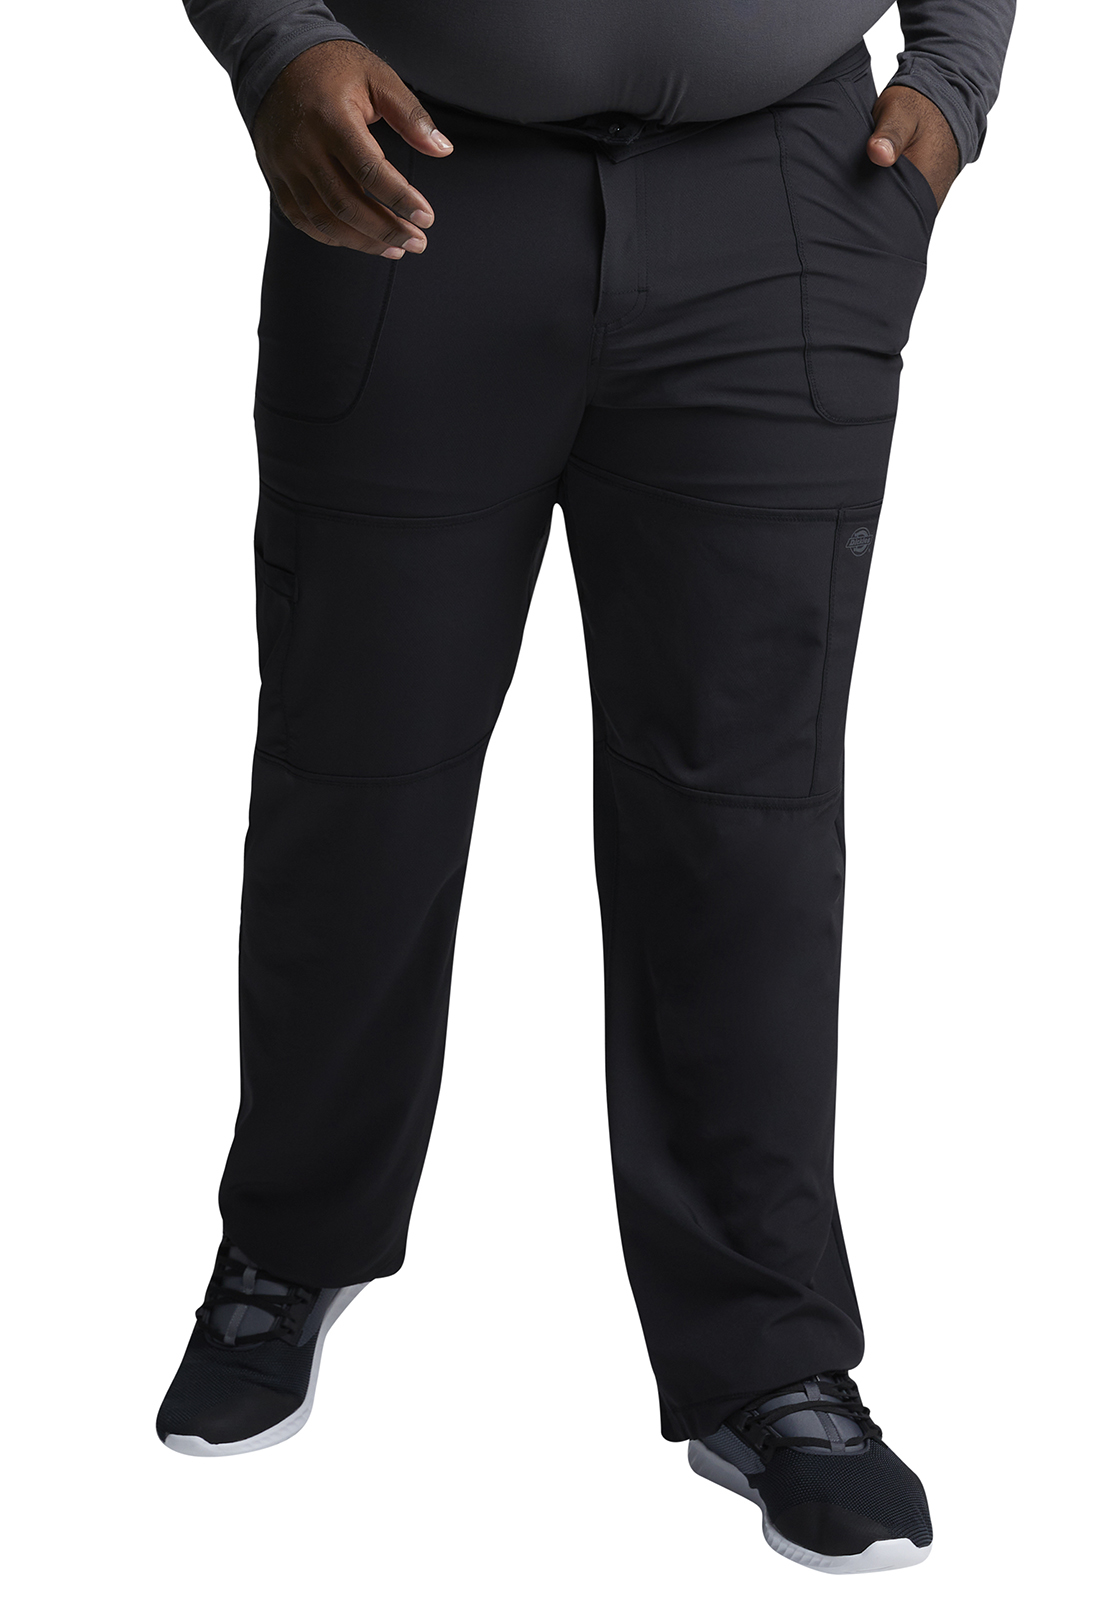 many styles recognized brands where to buy Dickies Men's Zip Fly Cargo Pant (Regular) in Black from Dickies Medical